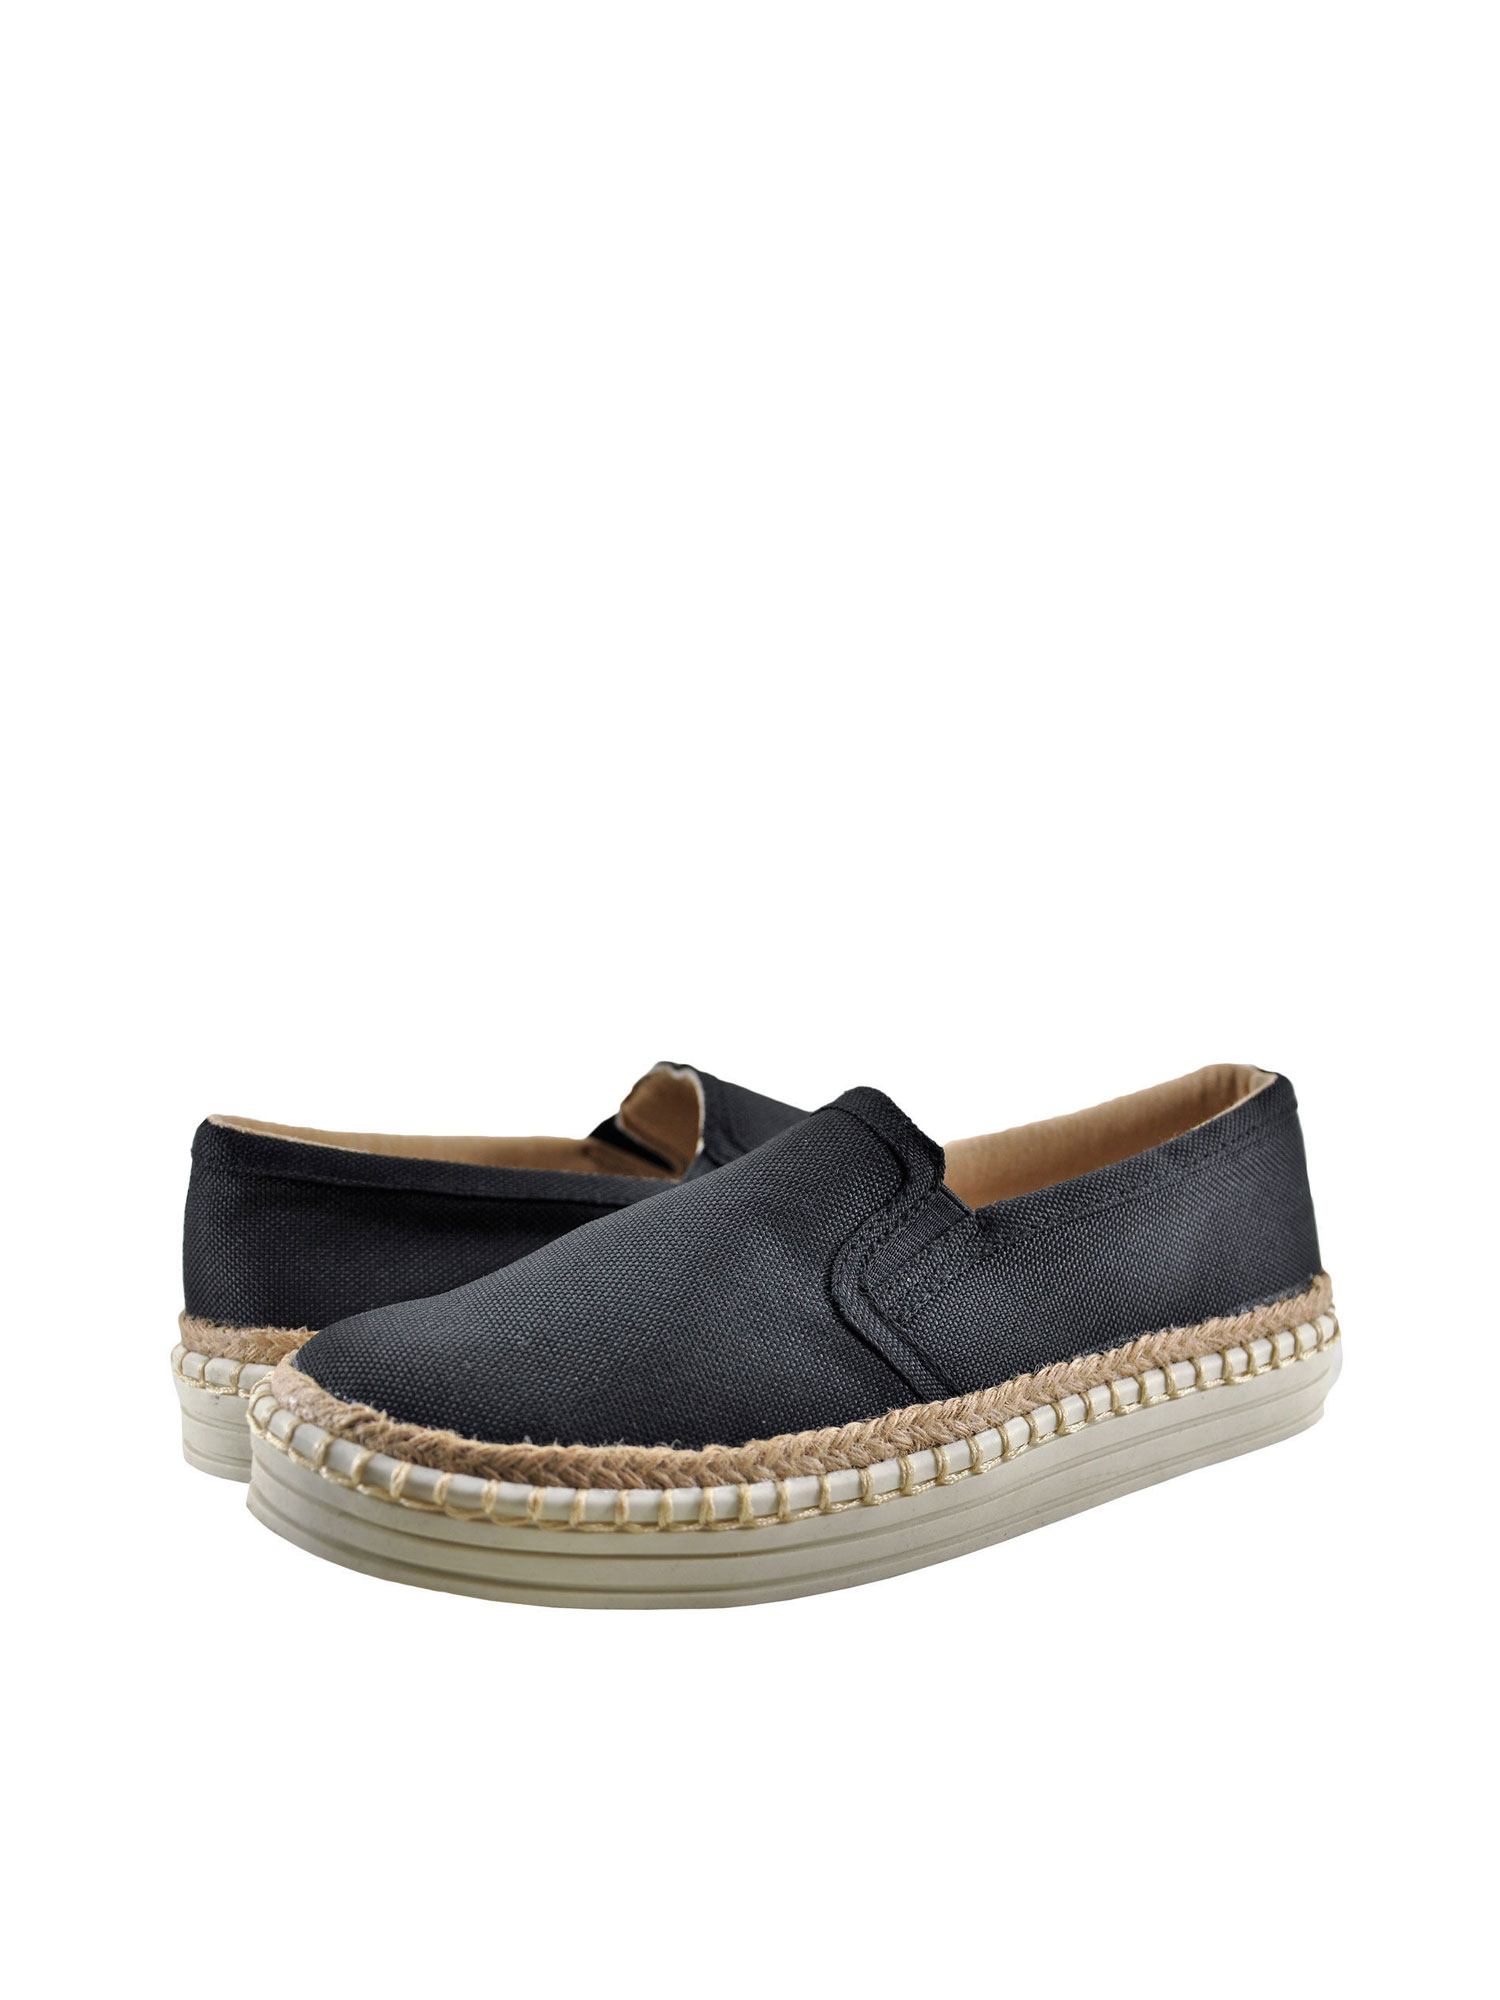 preview of united states latest SODA - Soda Phenix Women's Espadrilles Slip On Loafer - Walmart.com